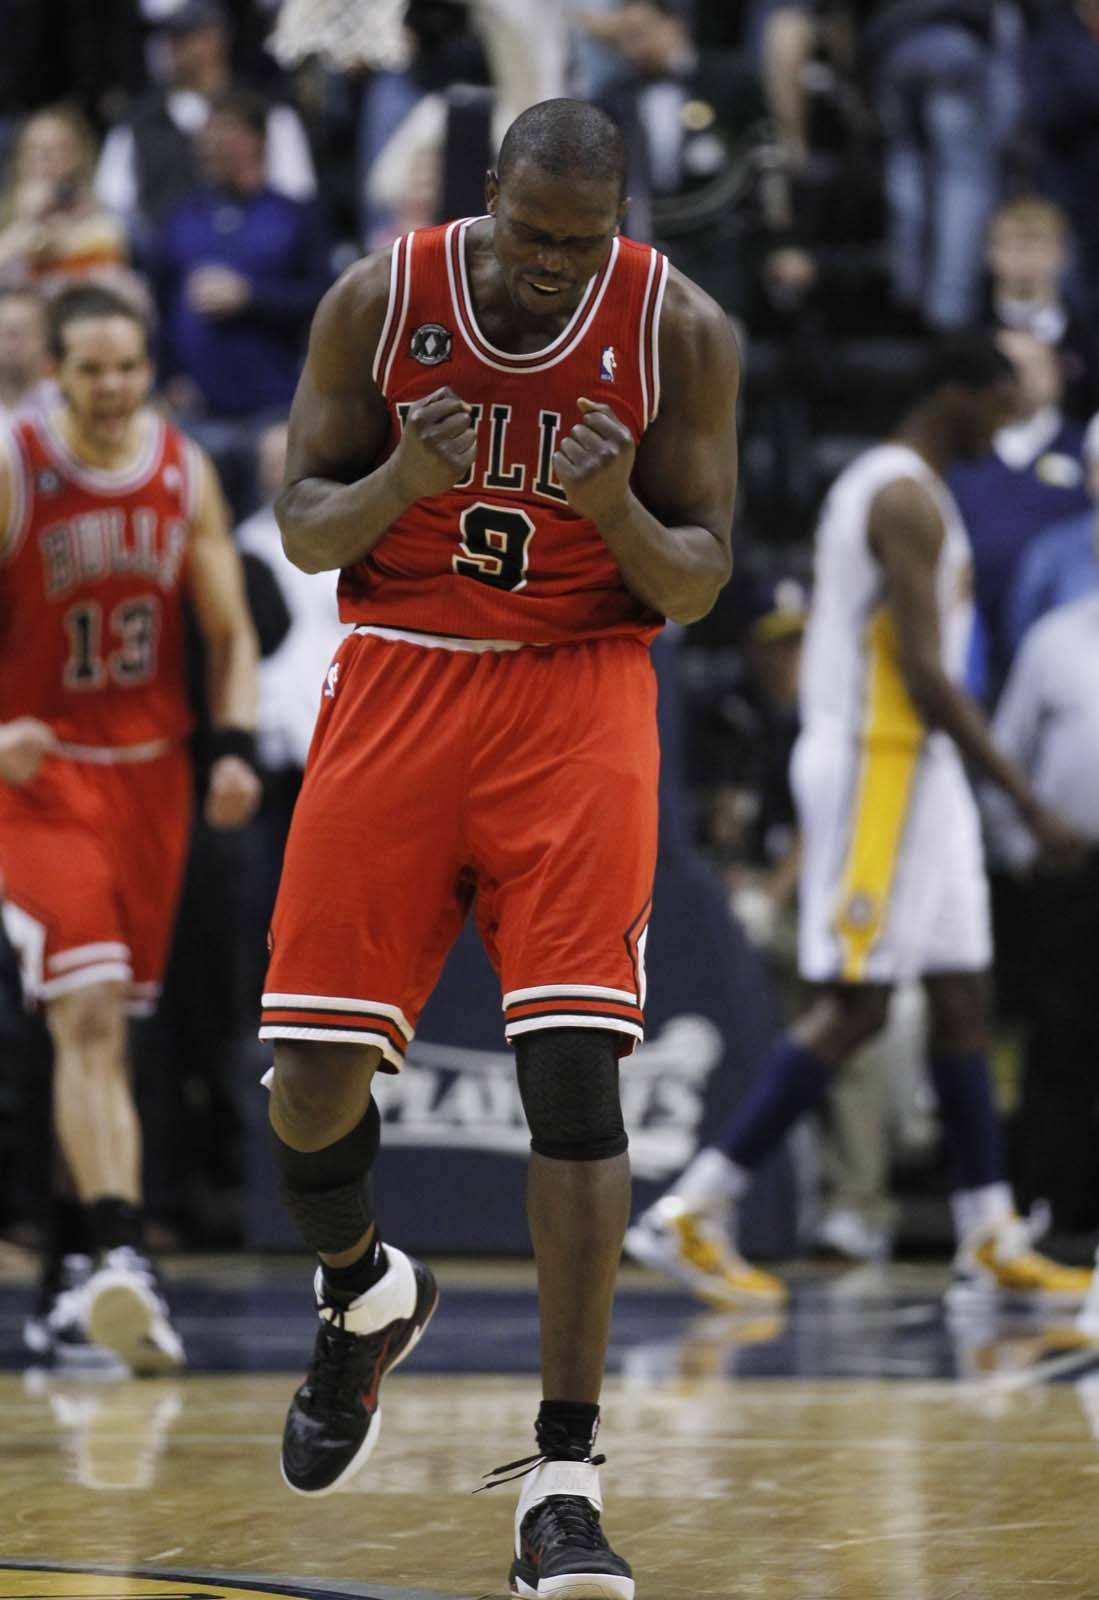 Chicago Bulls' Luol Deng (9) reacts during the final seconds in the second half.